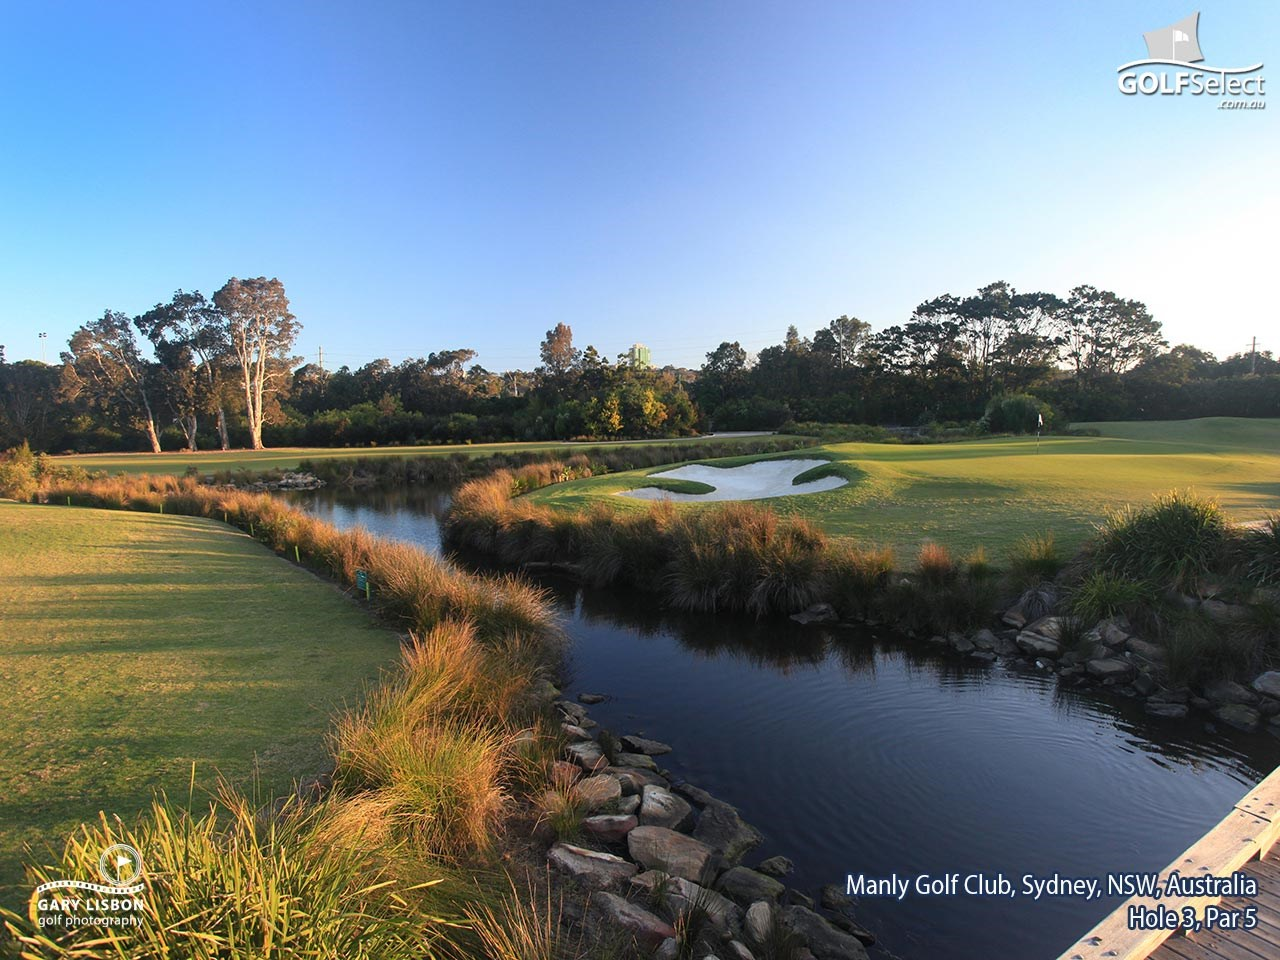 Manly Golf Club Hole 3, Par 5